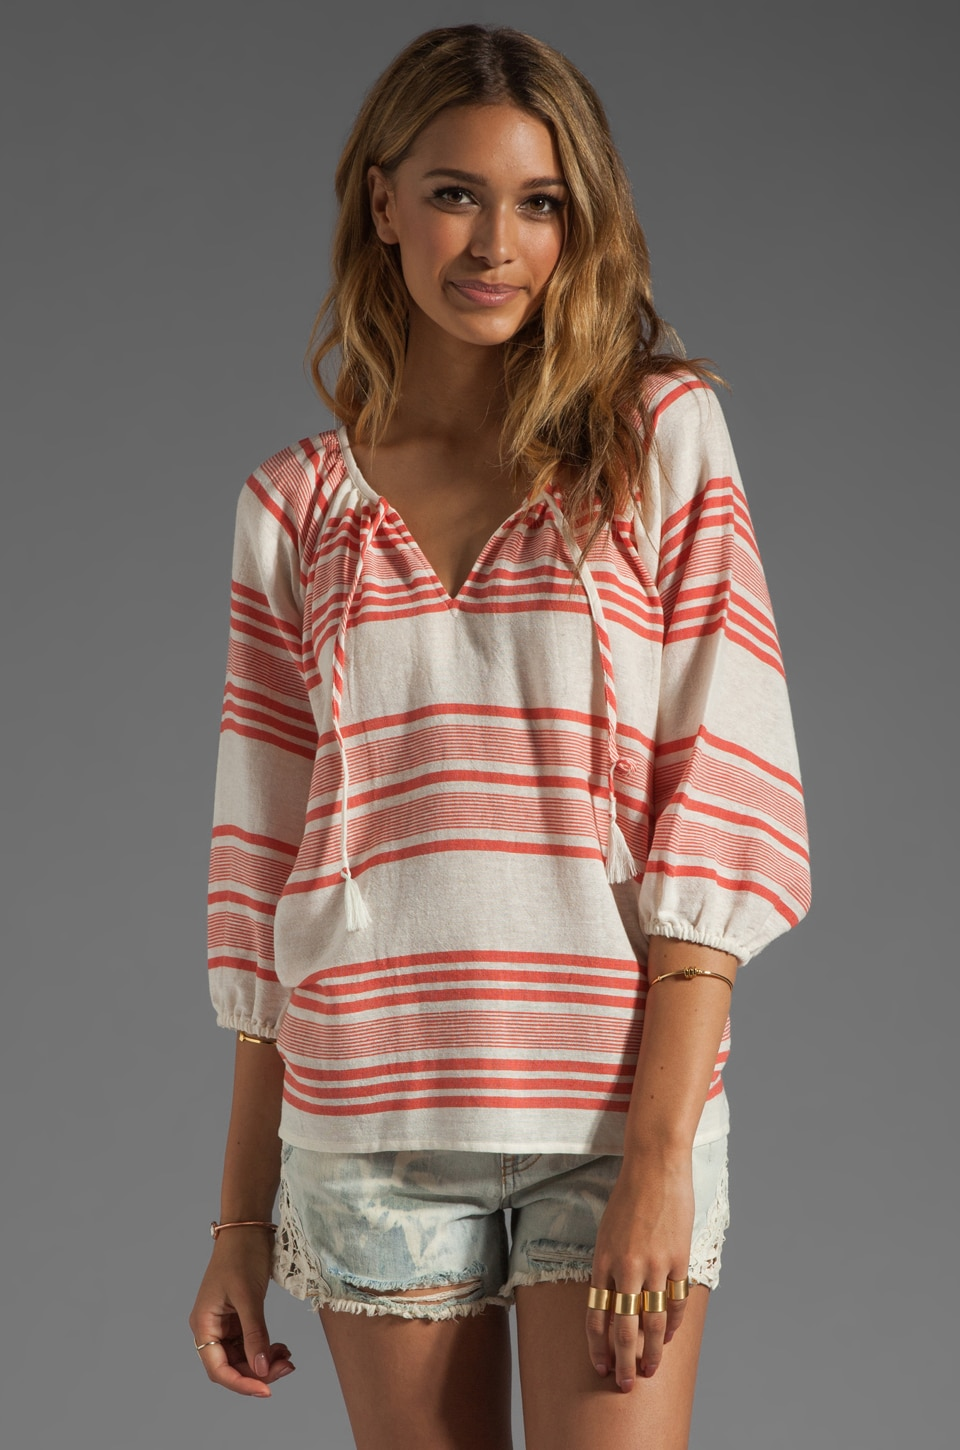 Soft Joie Legaspi Yarn Dye Top in Neon Coral